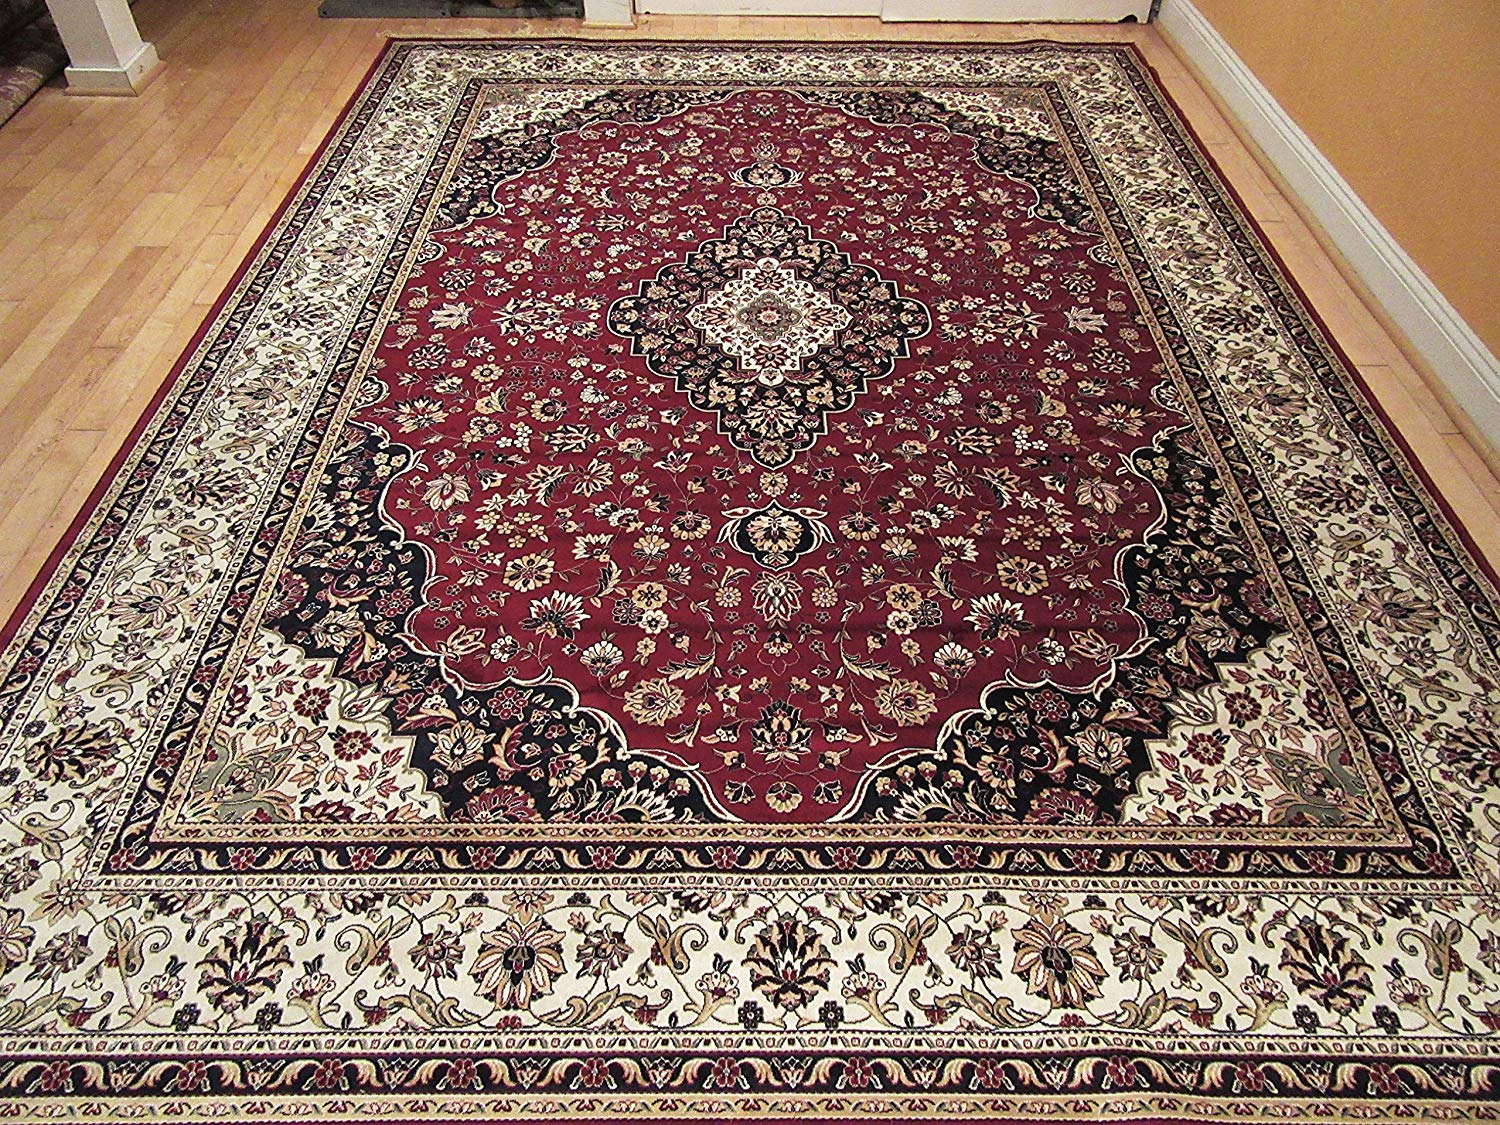 silk rugs persian silk ivory area rugs 6x8 red living room rug ZLMEOLD